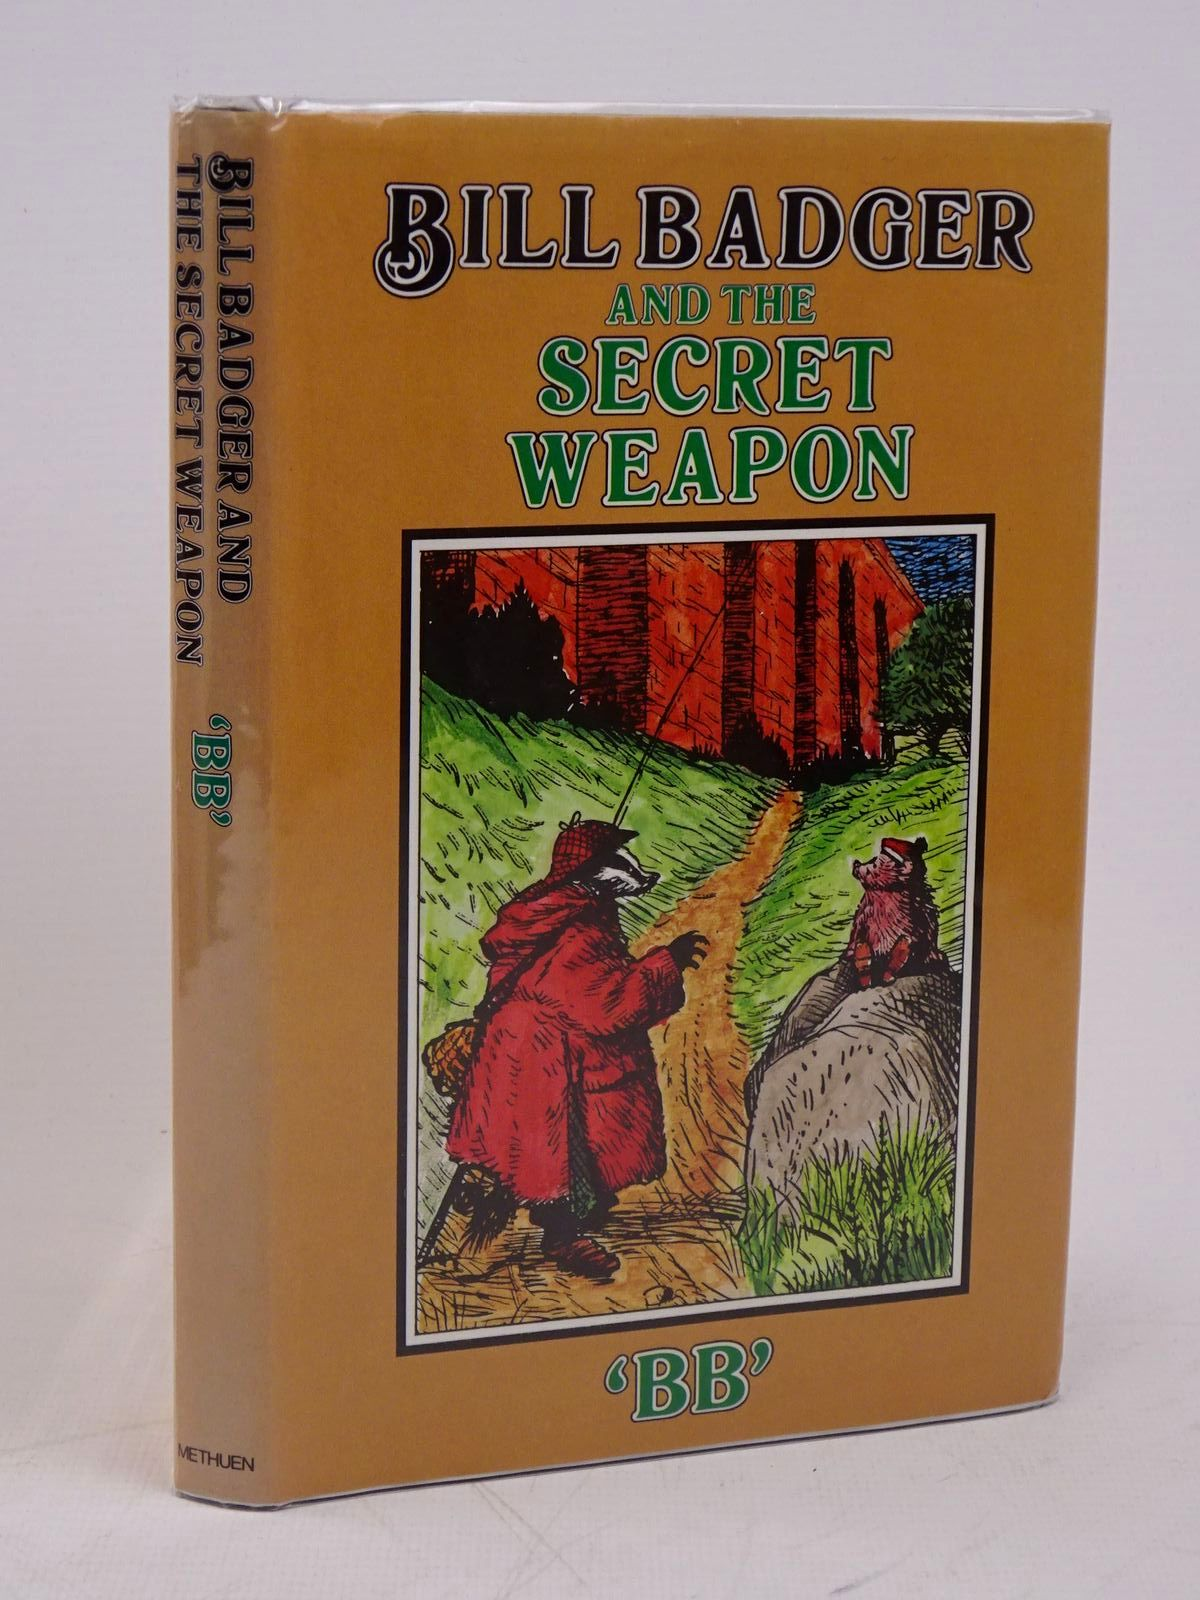 Photo of BILL BADGER AND THE SECRET WEAPON written by BB,  illustrated by BB,  published by Methuen Children's Books (STOCK CODE: 1317862)  for sale by Stella & Rose's Books